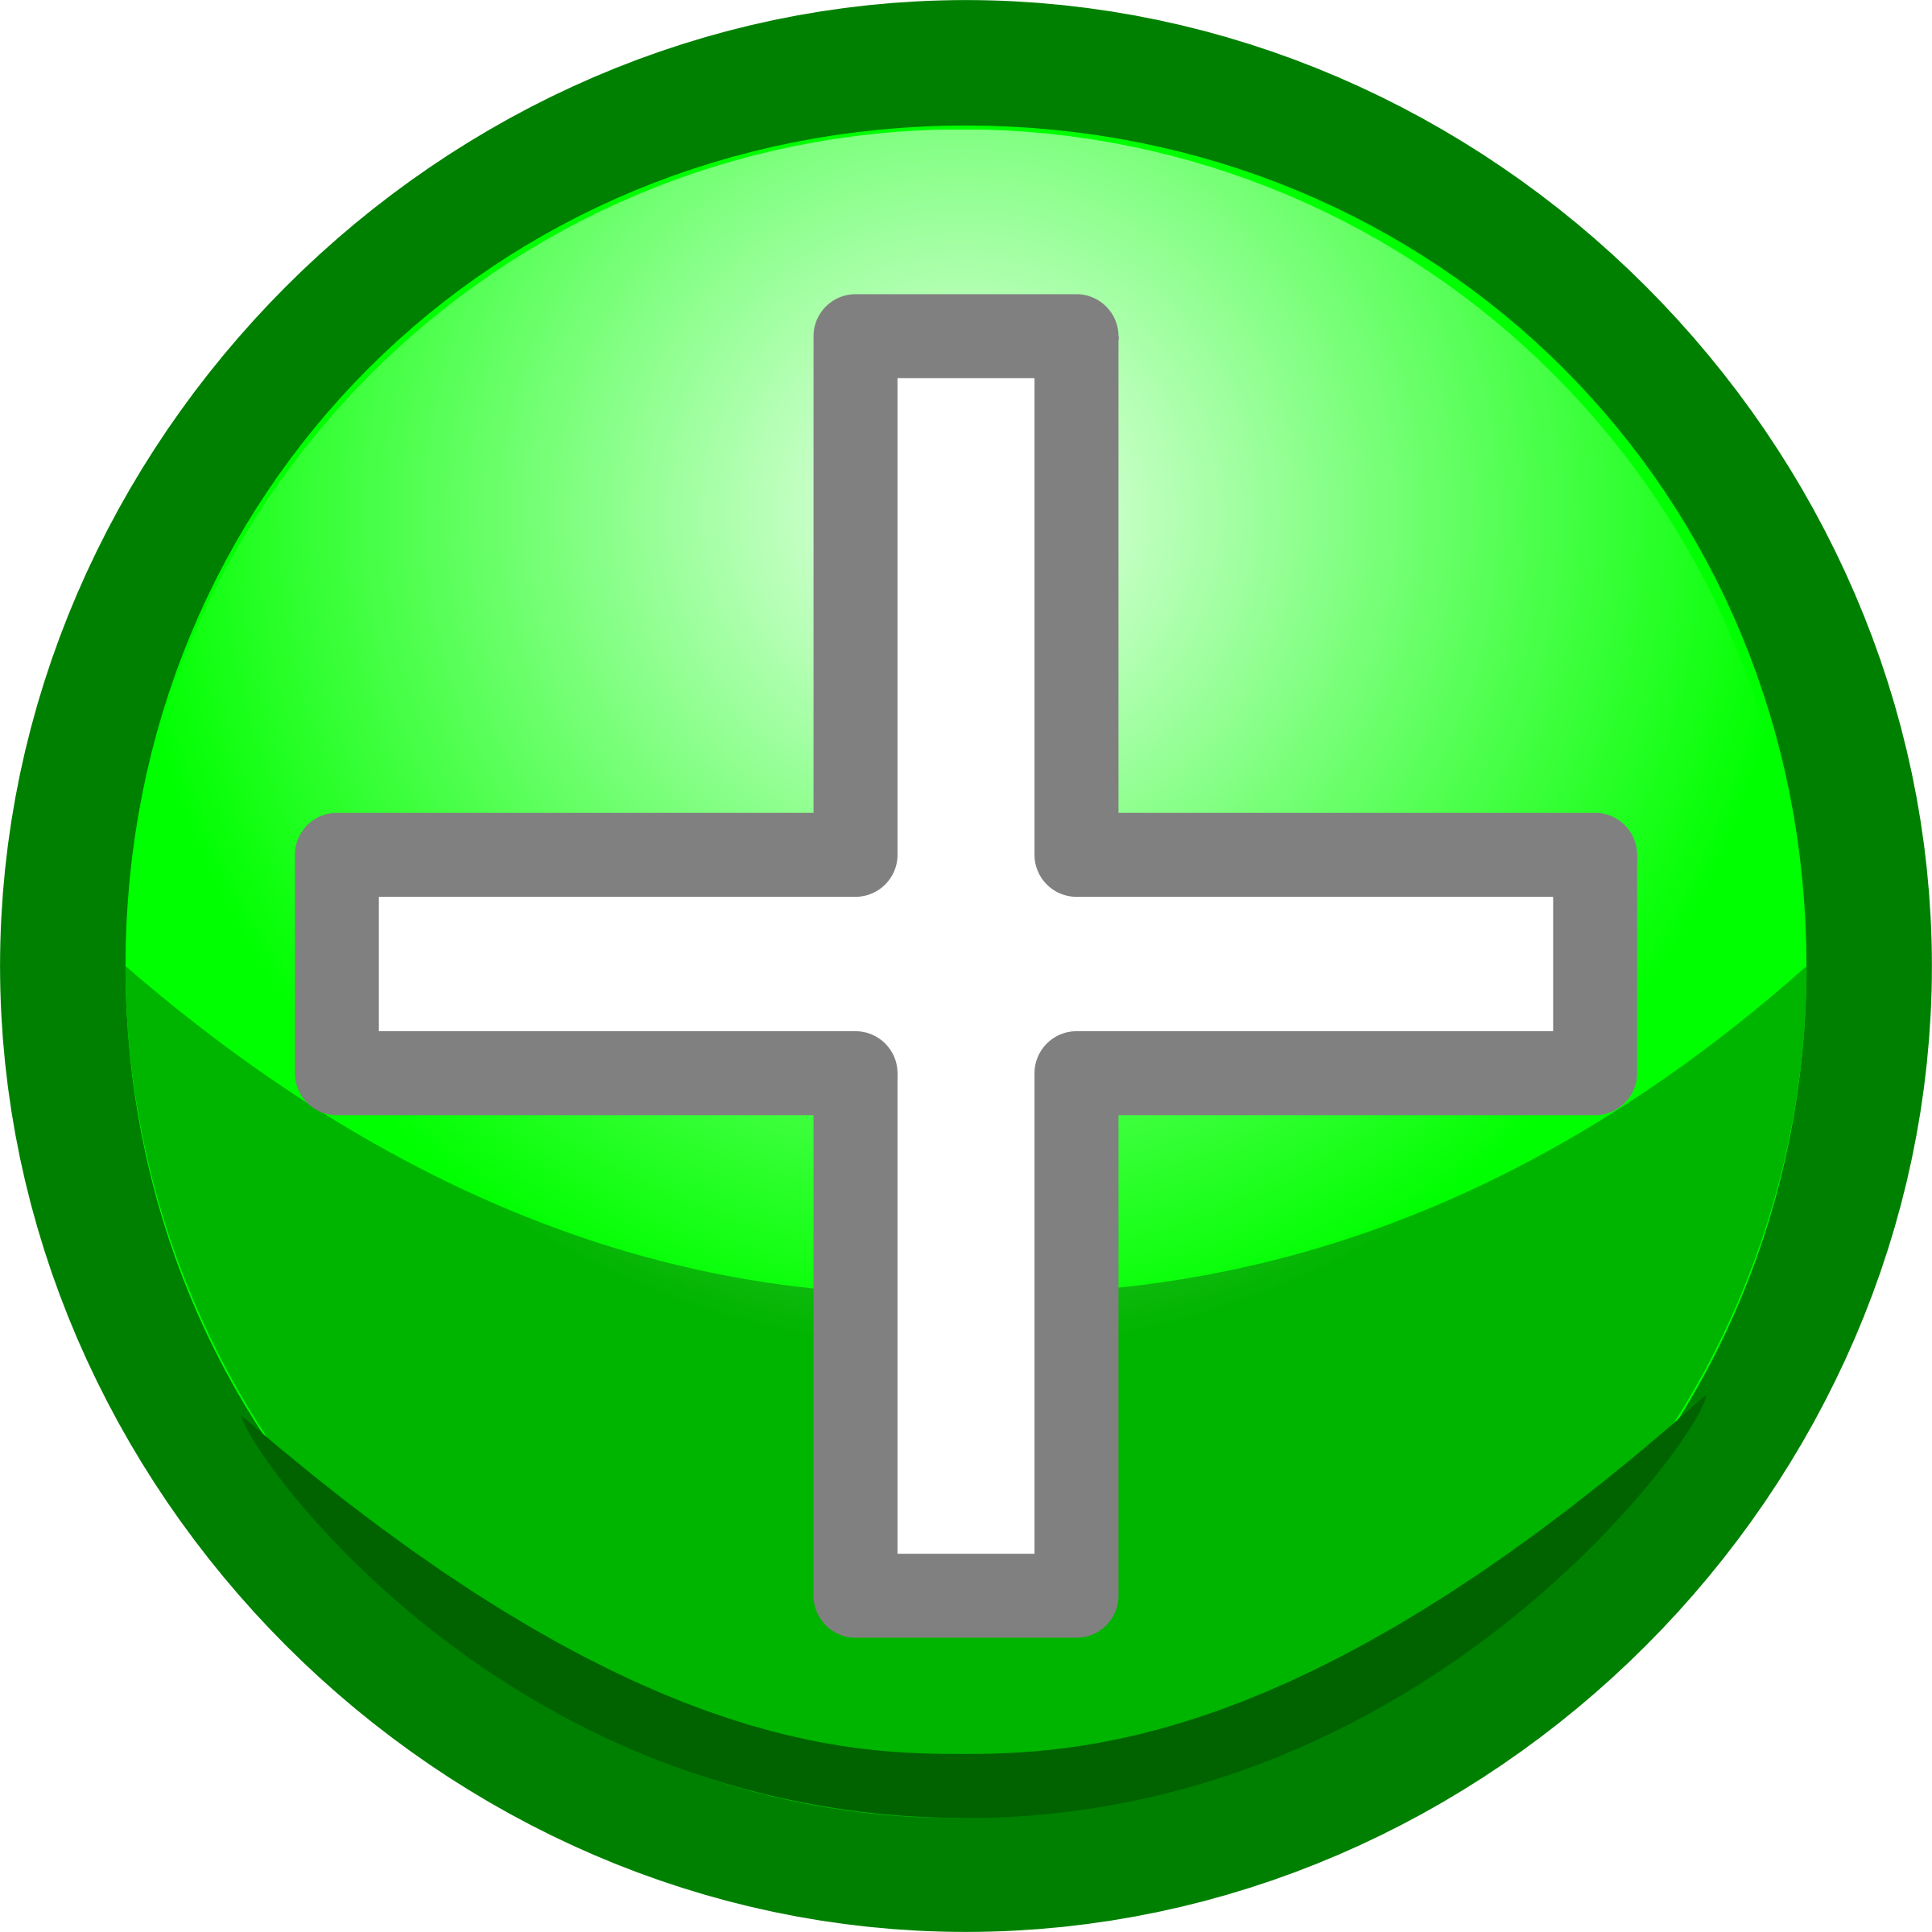 Cross clipart green banner freeuse Clipart - Green plus banner freeuse